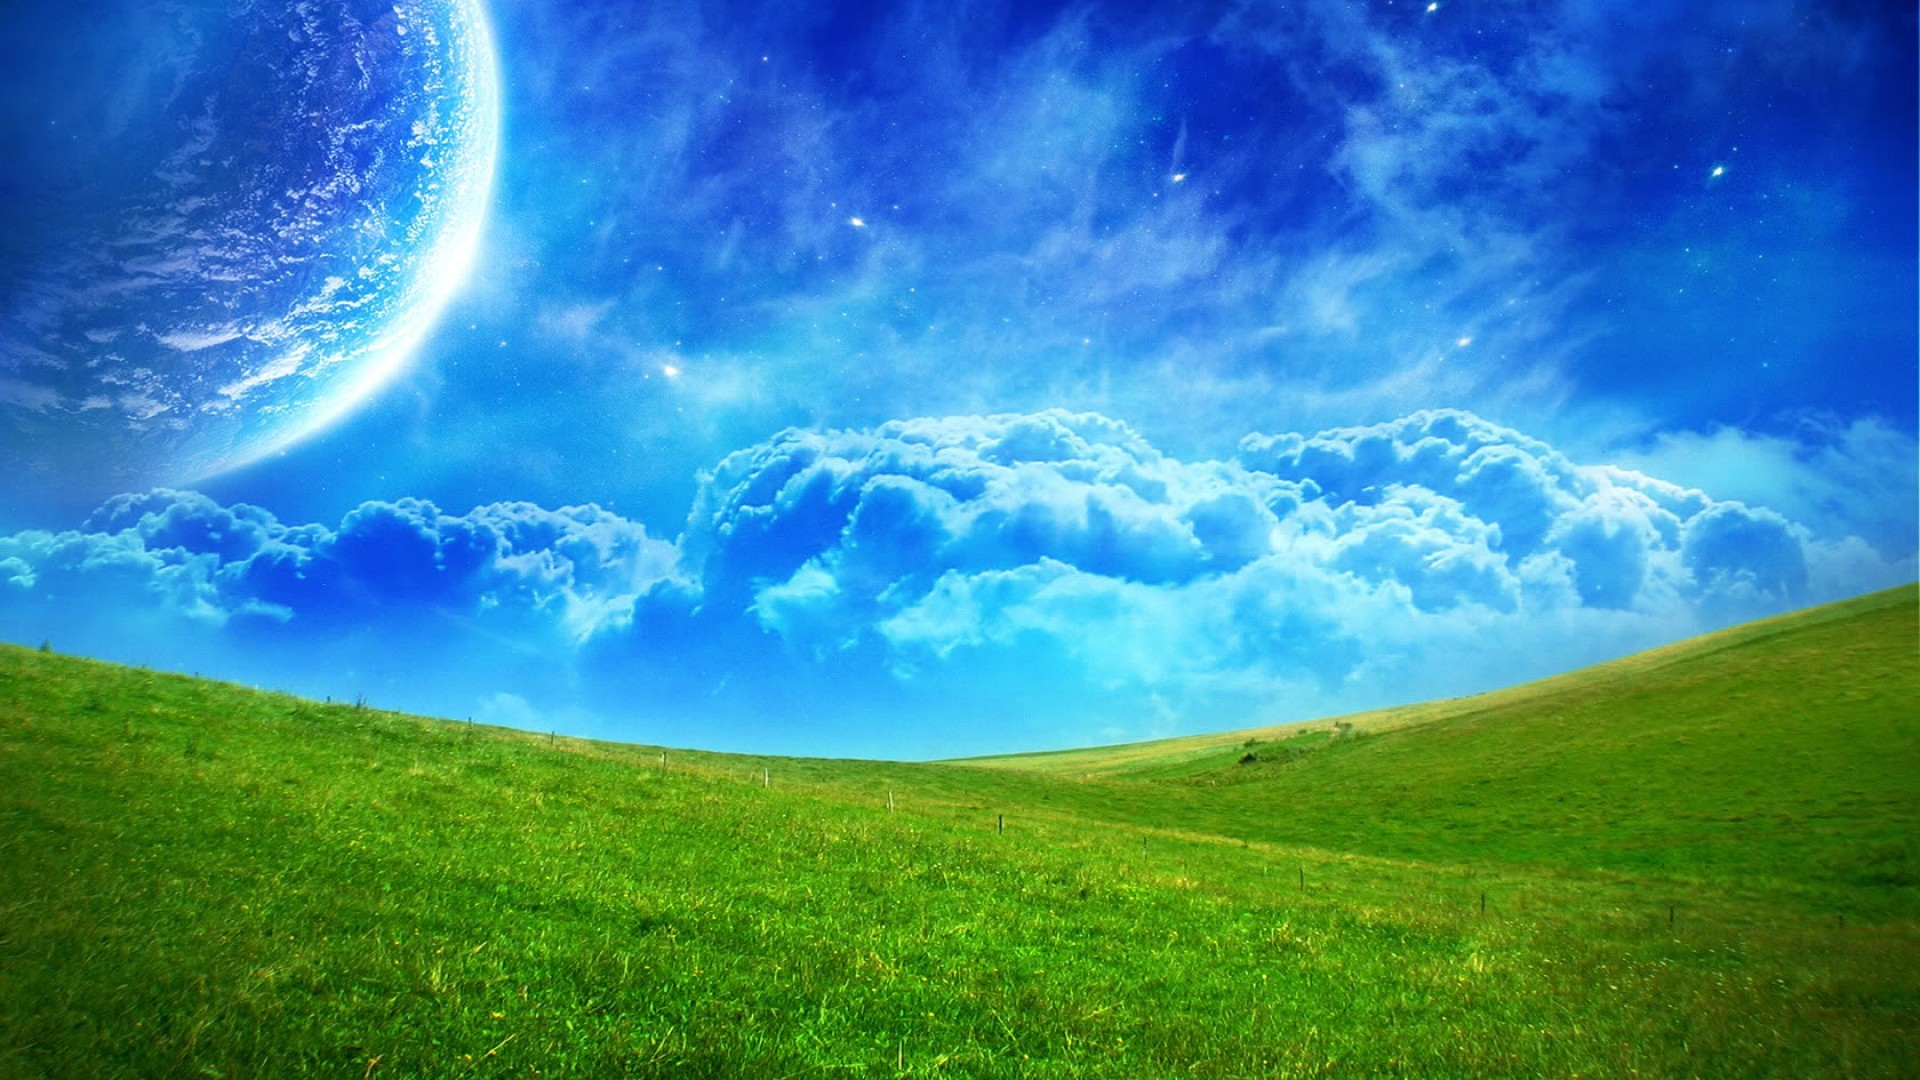 Homepage » Nature and Landscape » Nature HD wallpaper (3)